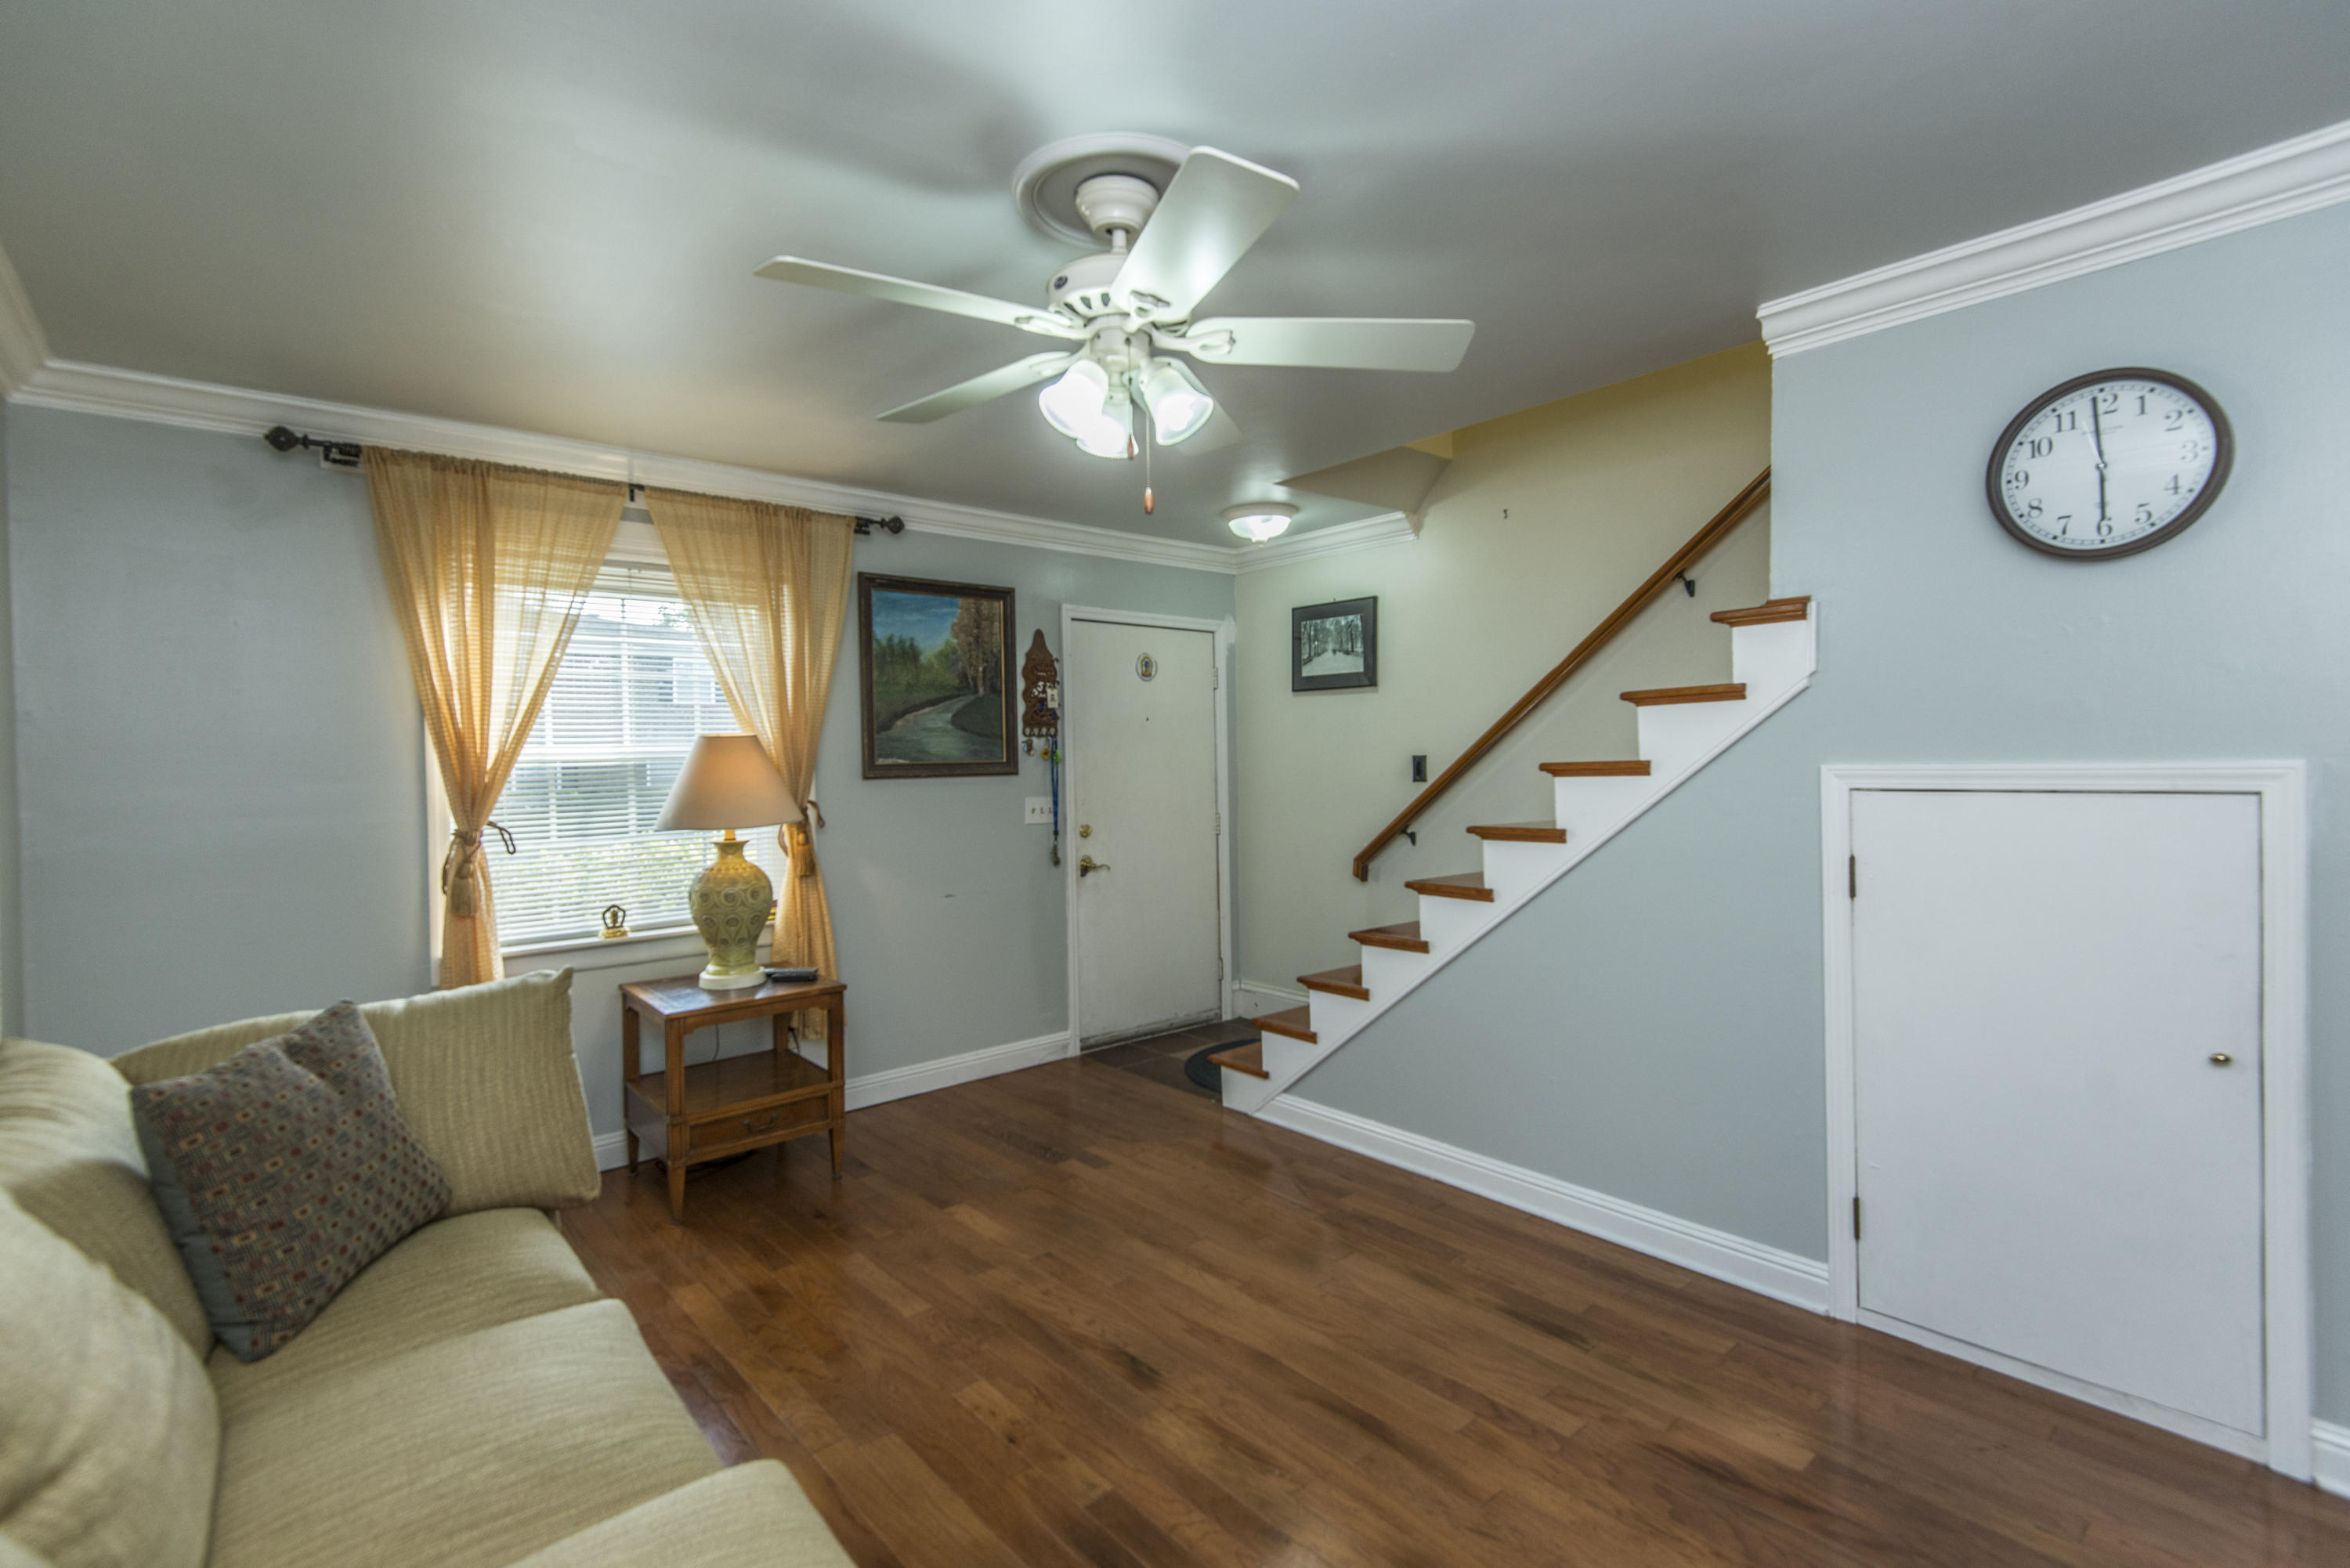 Rivers Point Row Homes For Sale - 21 Rivers Point Row, Charleston, SC - 10